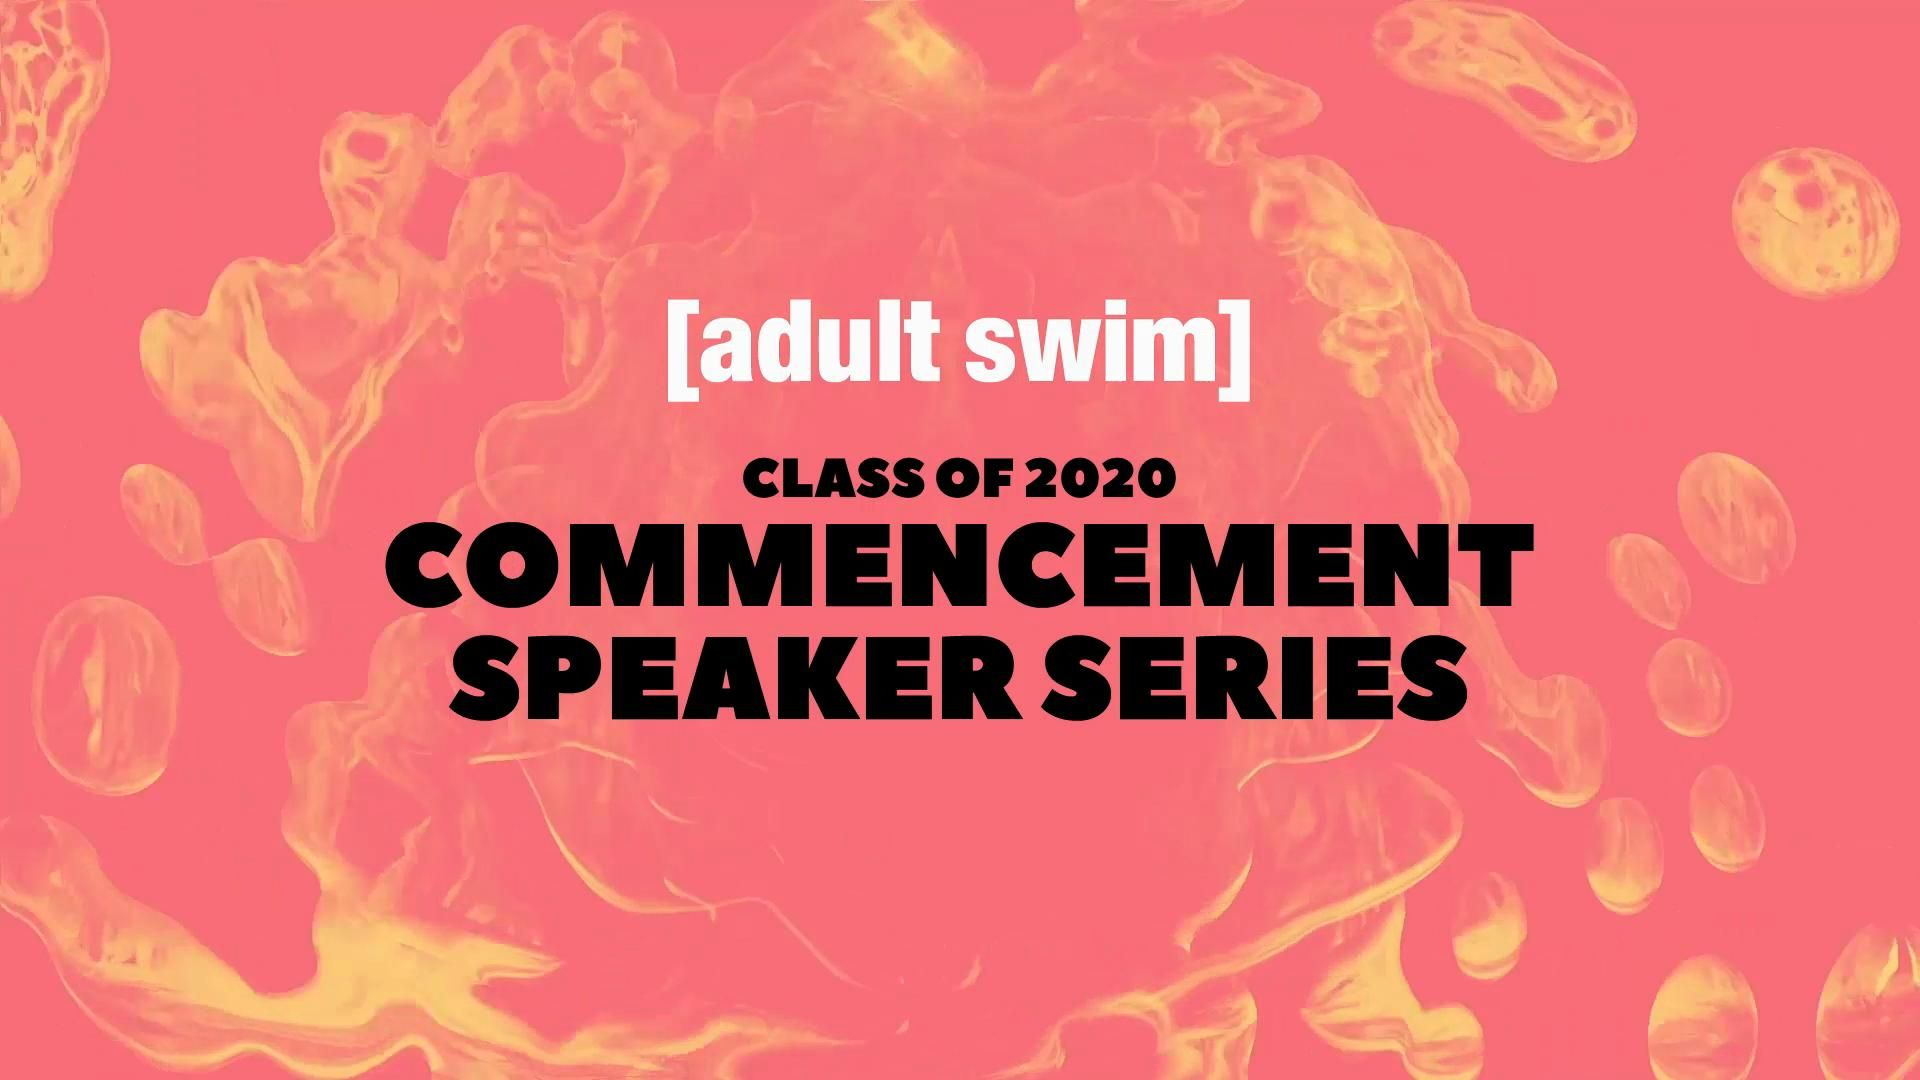 2020 Adult Swim Commencement Speaker Series